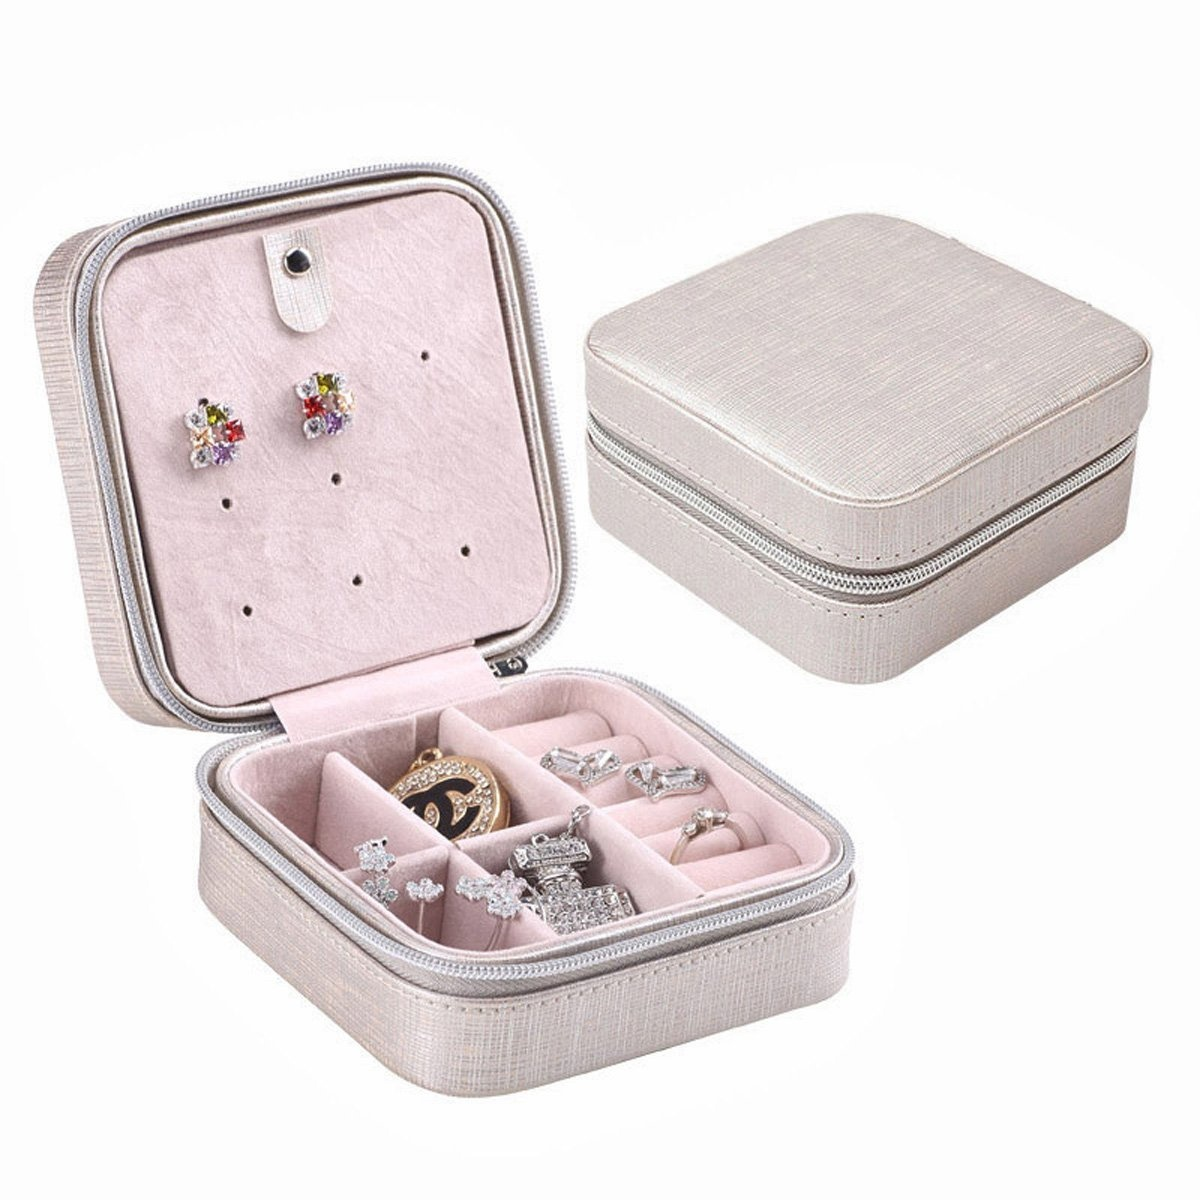 Joyooo Cream Faux Leather Portable Travel Jewellery Box Case For Earring Ring Necklace Etc Black